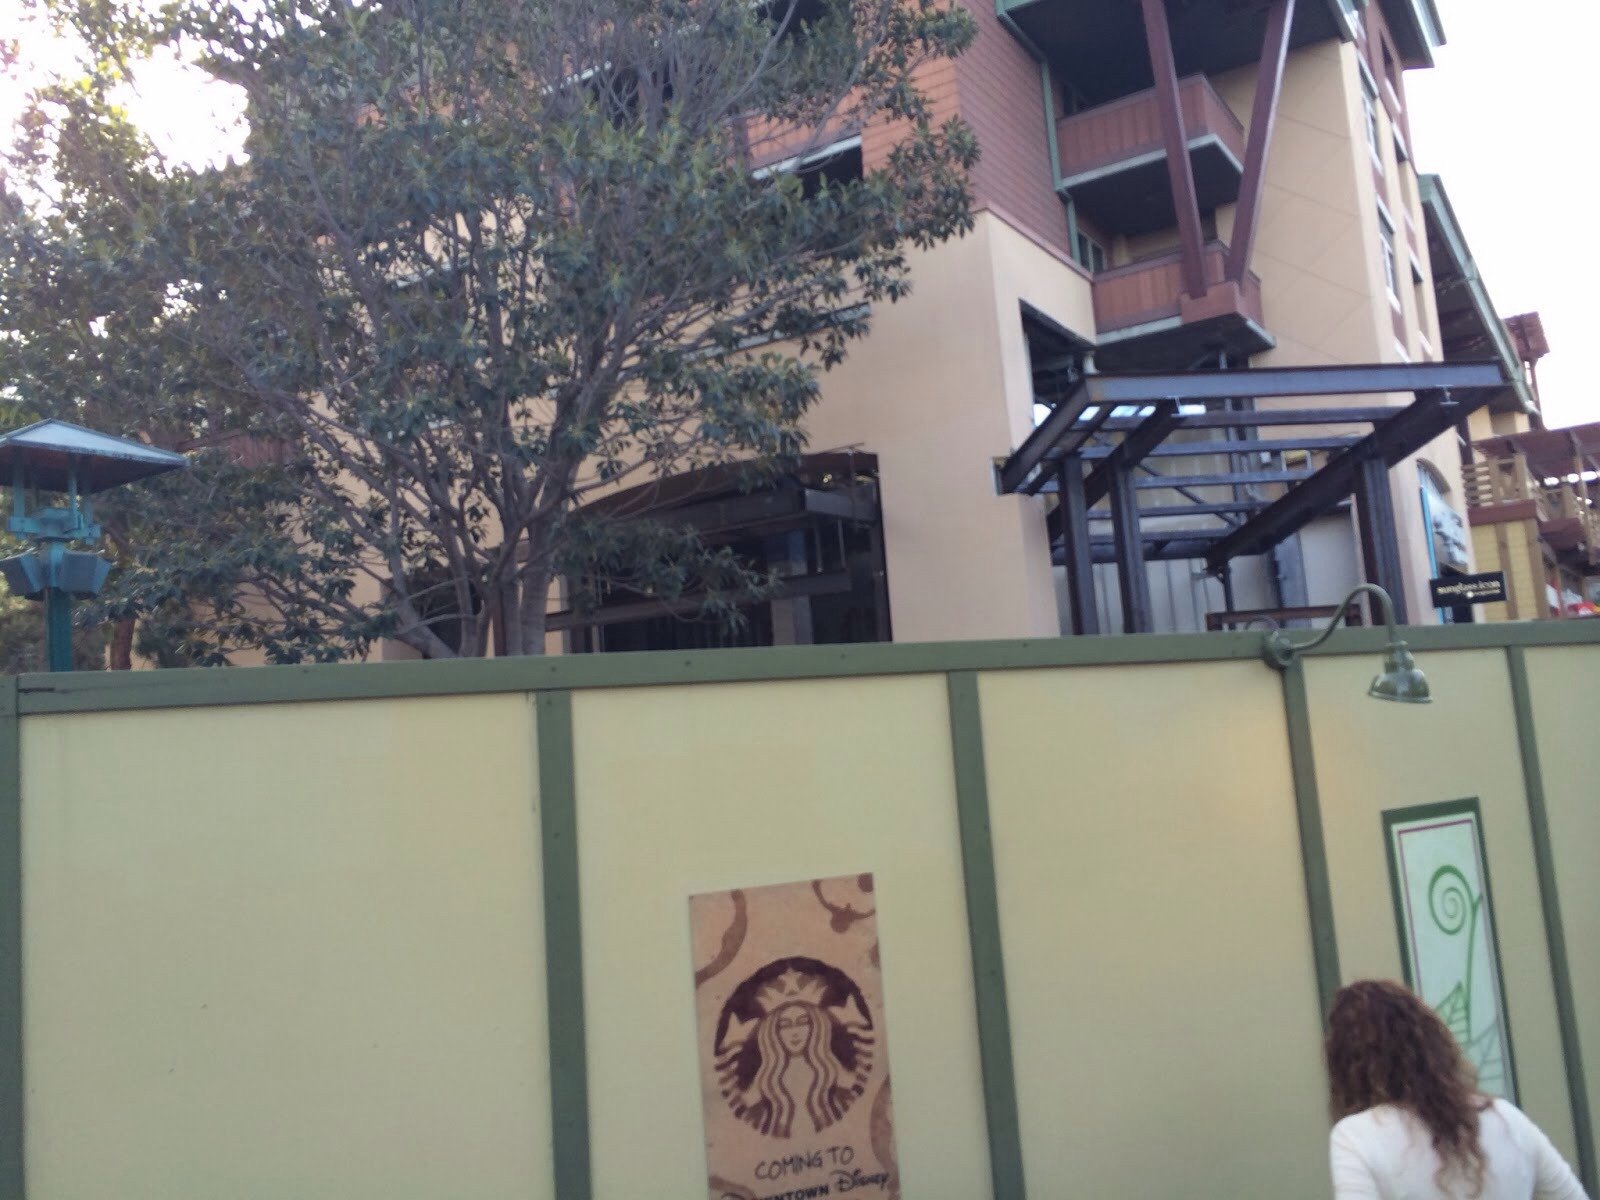 Disneyland Downtown Disney Starbucks